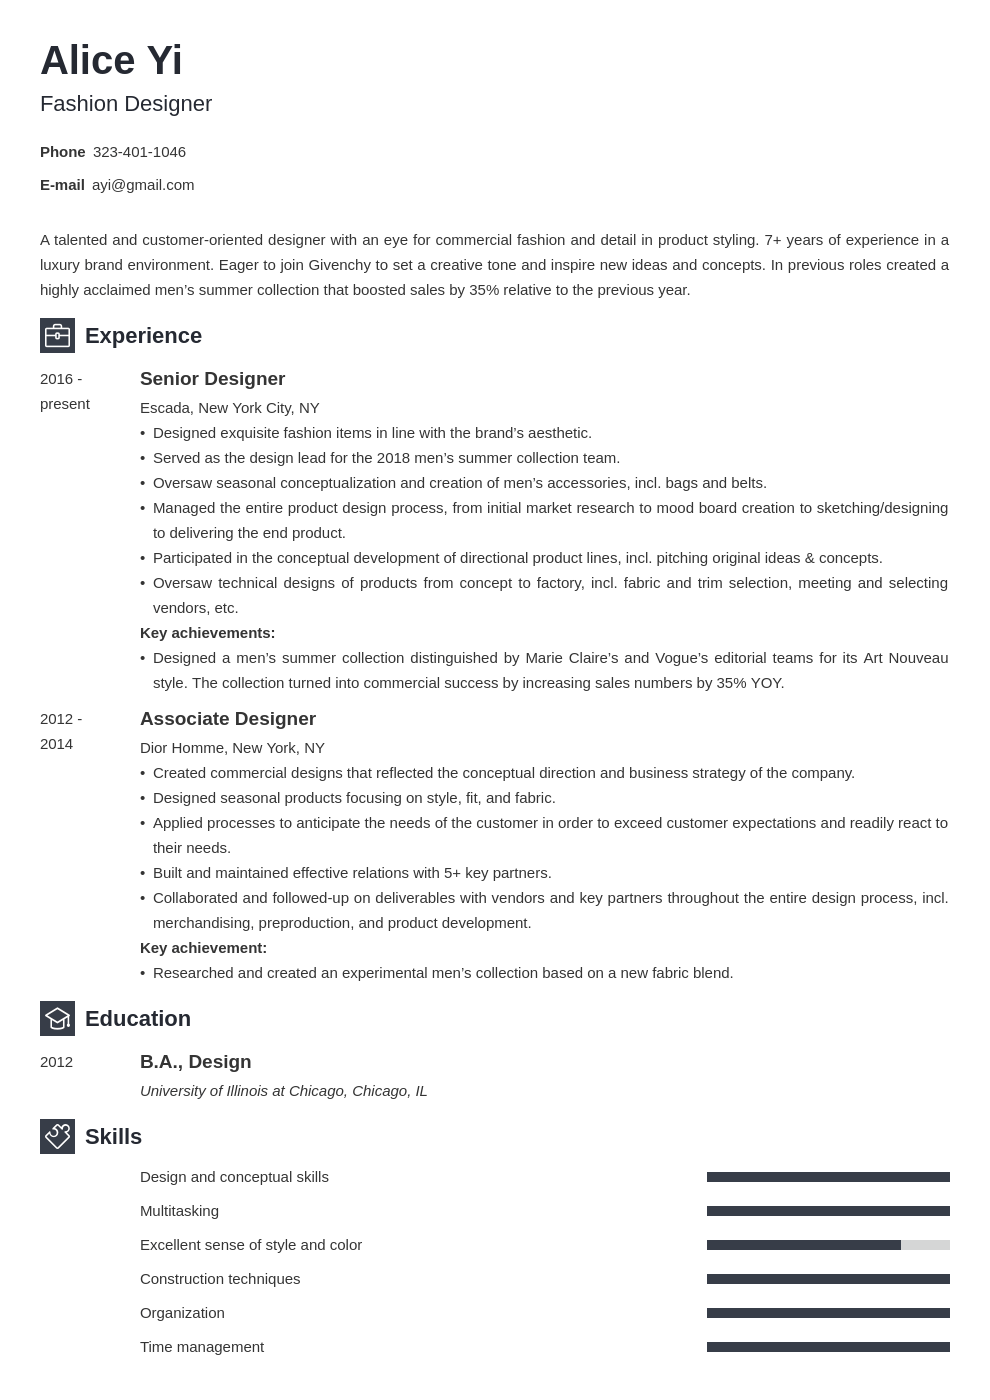 Fashion Designer Resume Examples Writing Guide 20 Tips